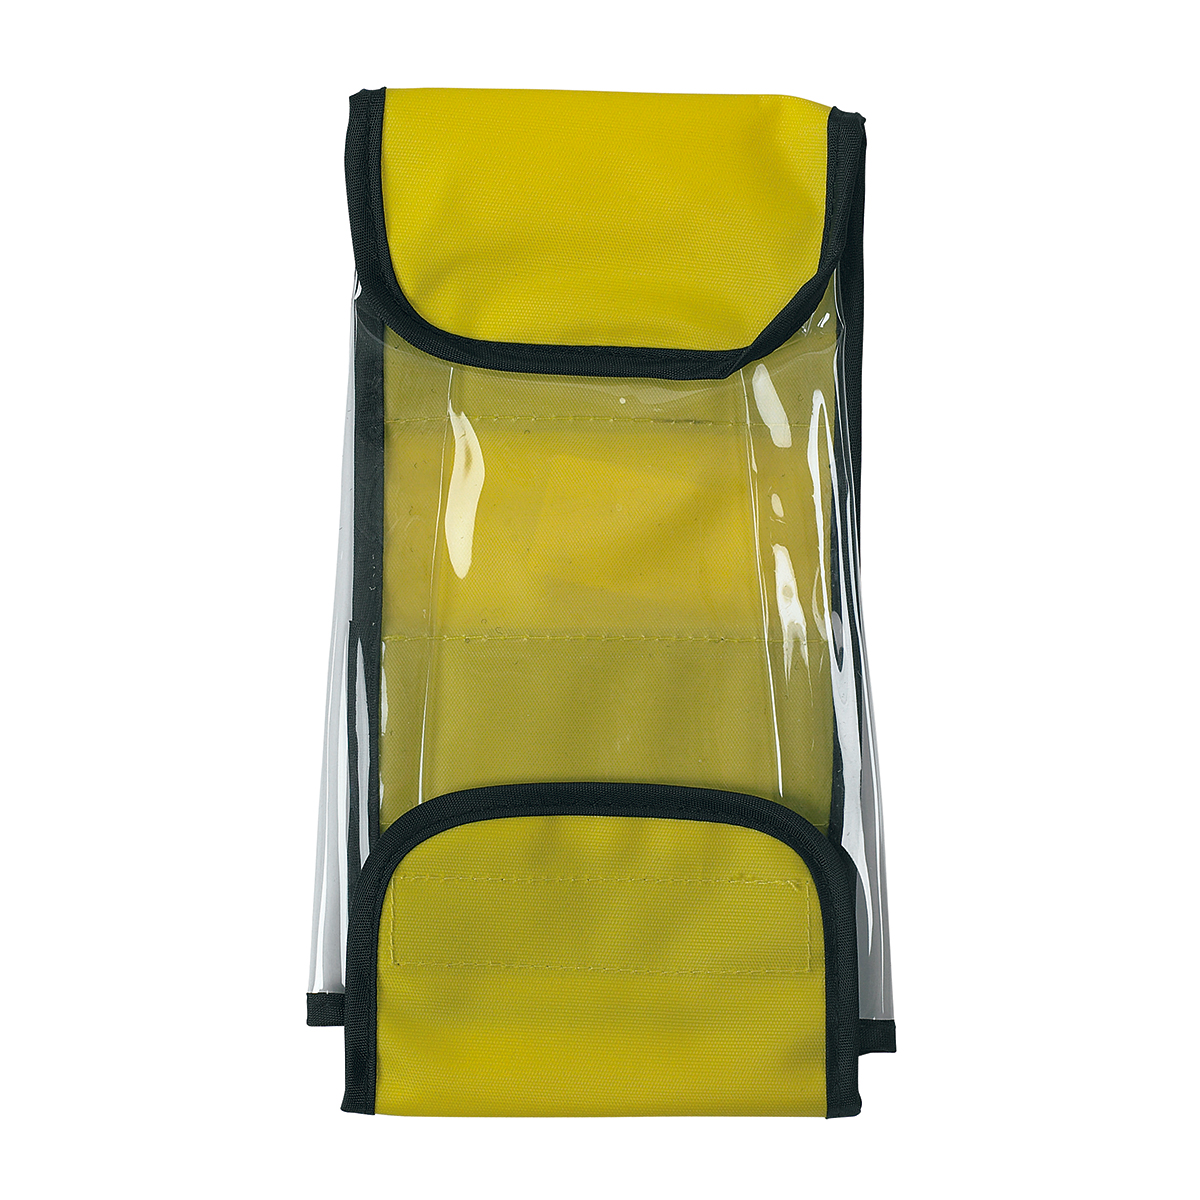 Yellow B Pouch for St John Ambulance Backpack